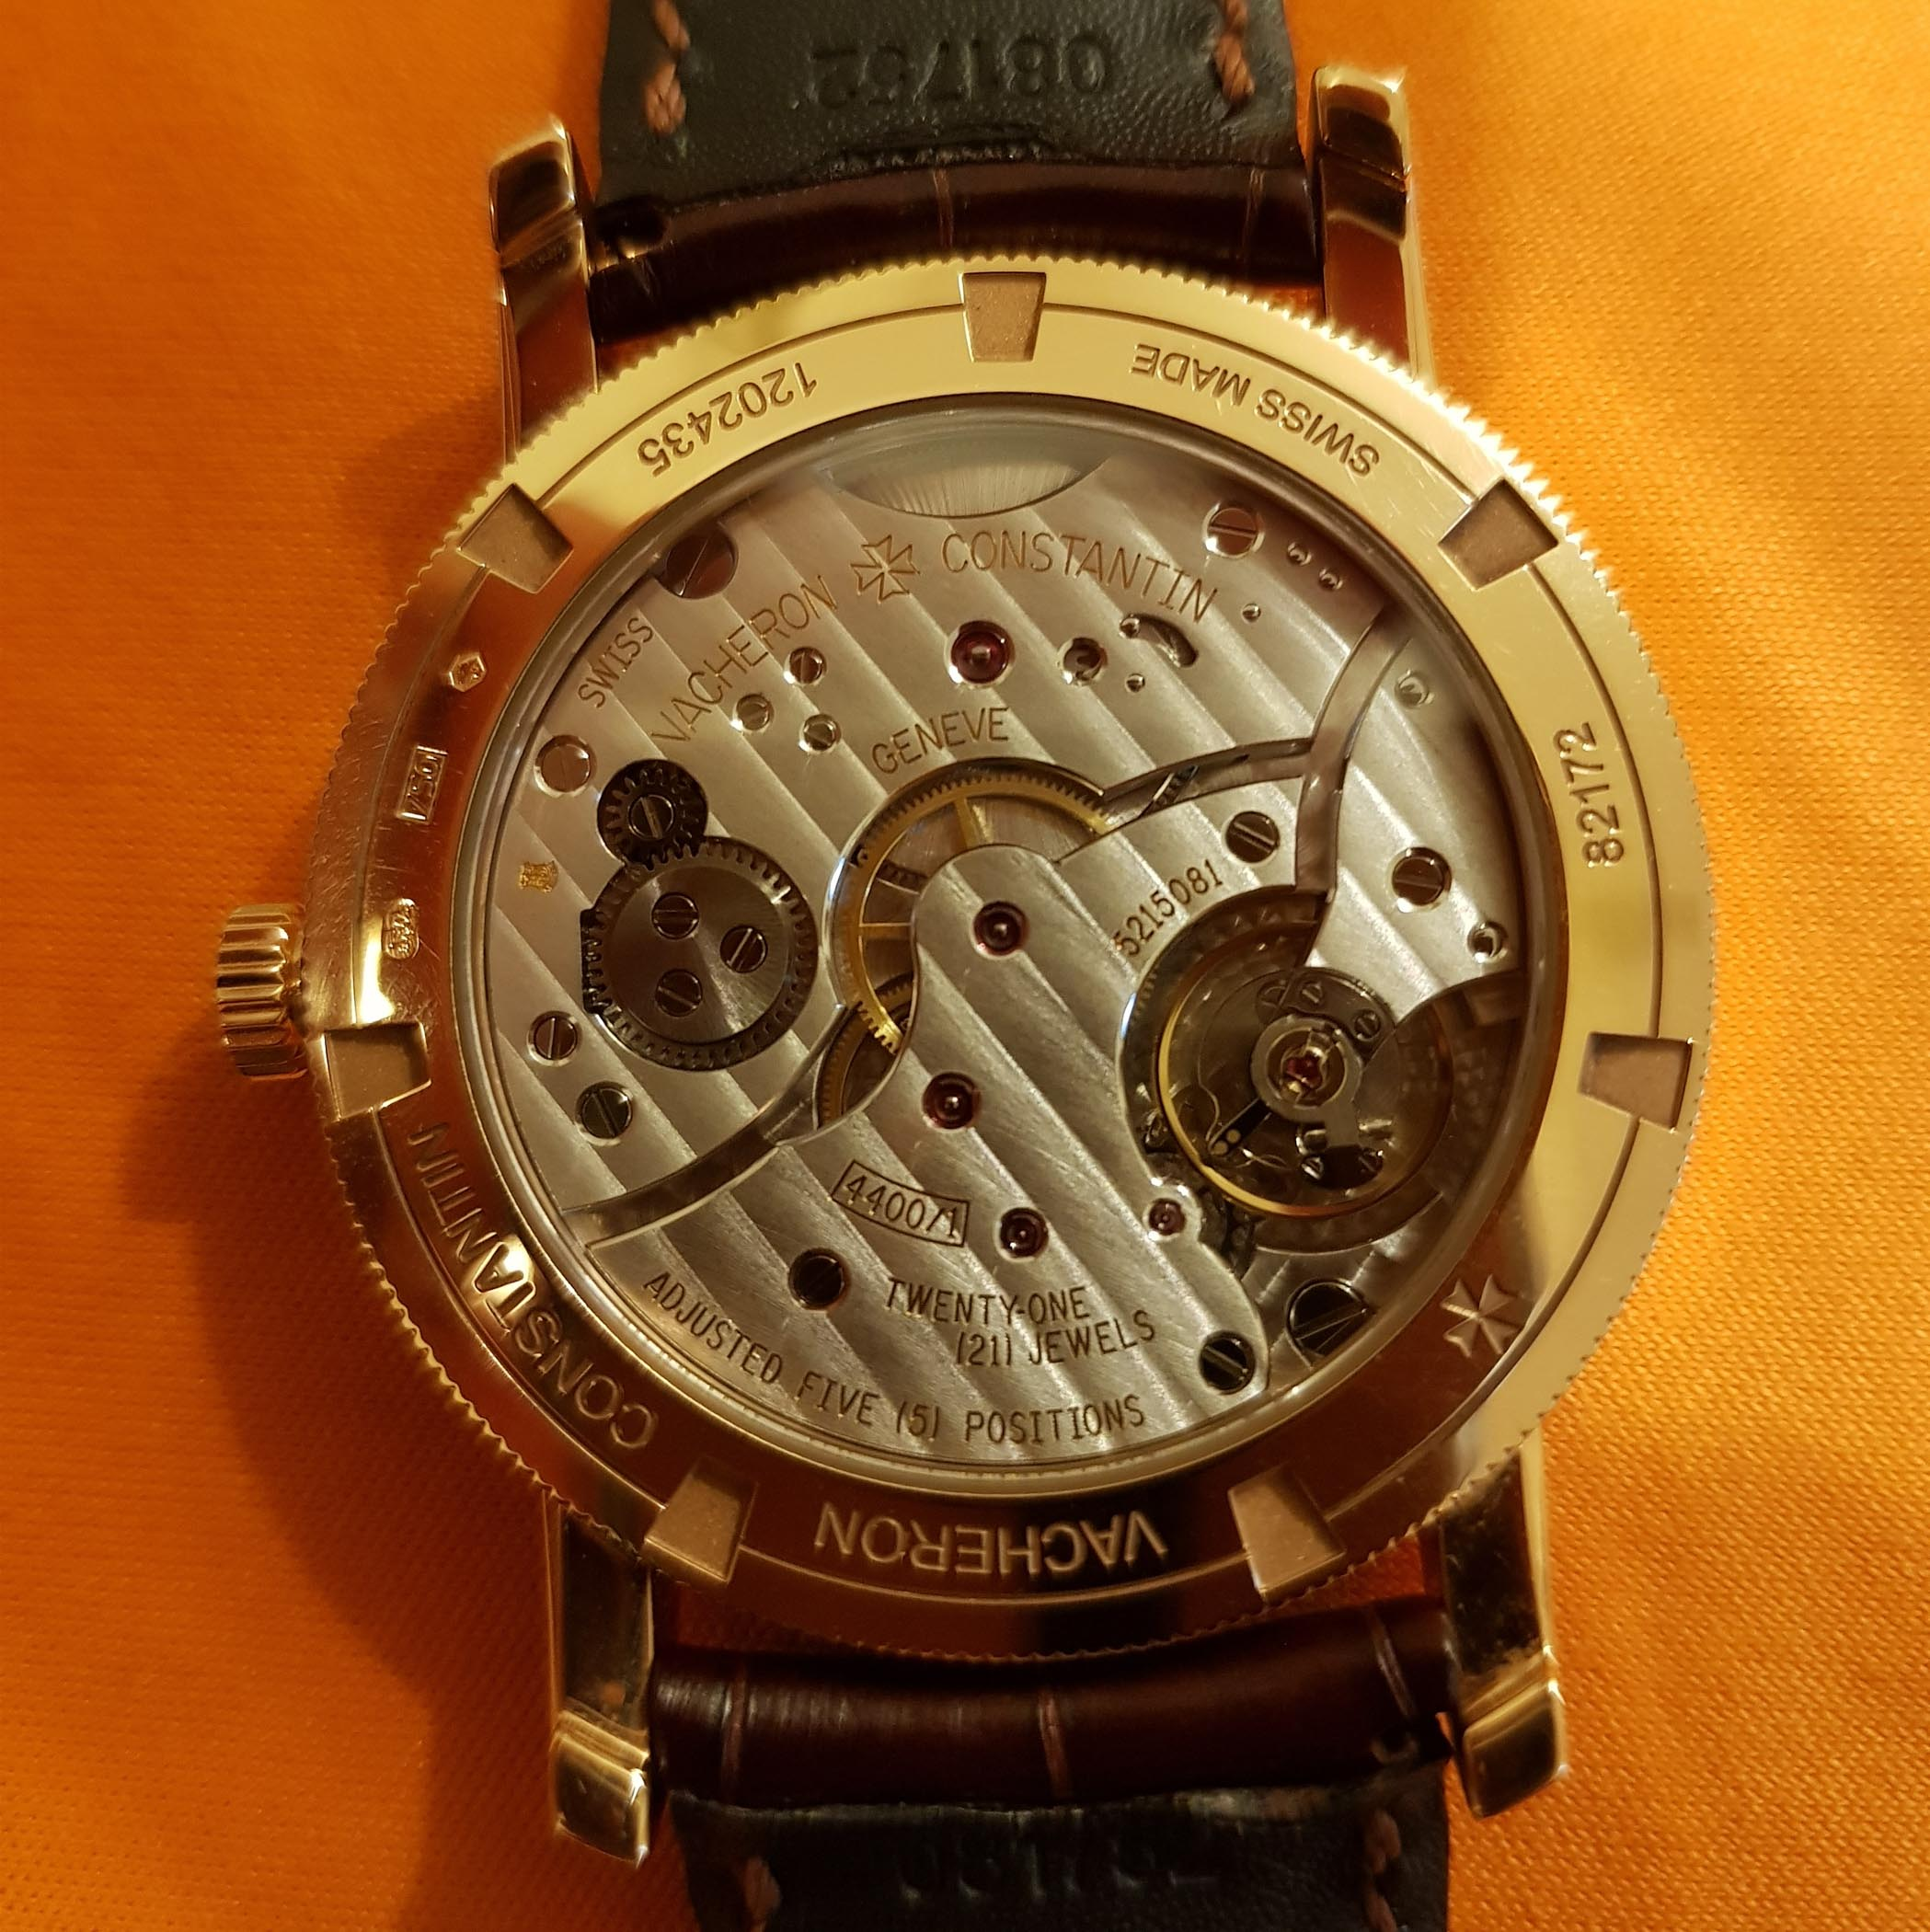 Collectors Series - khemkakunal and his Vacheron Constantin Traditionnelle Manual-Winding